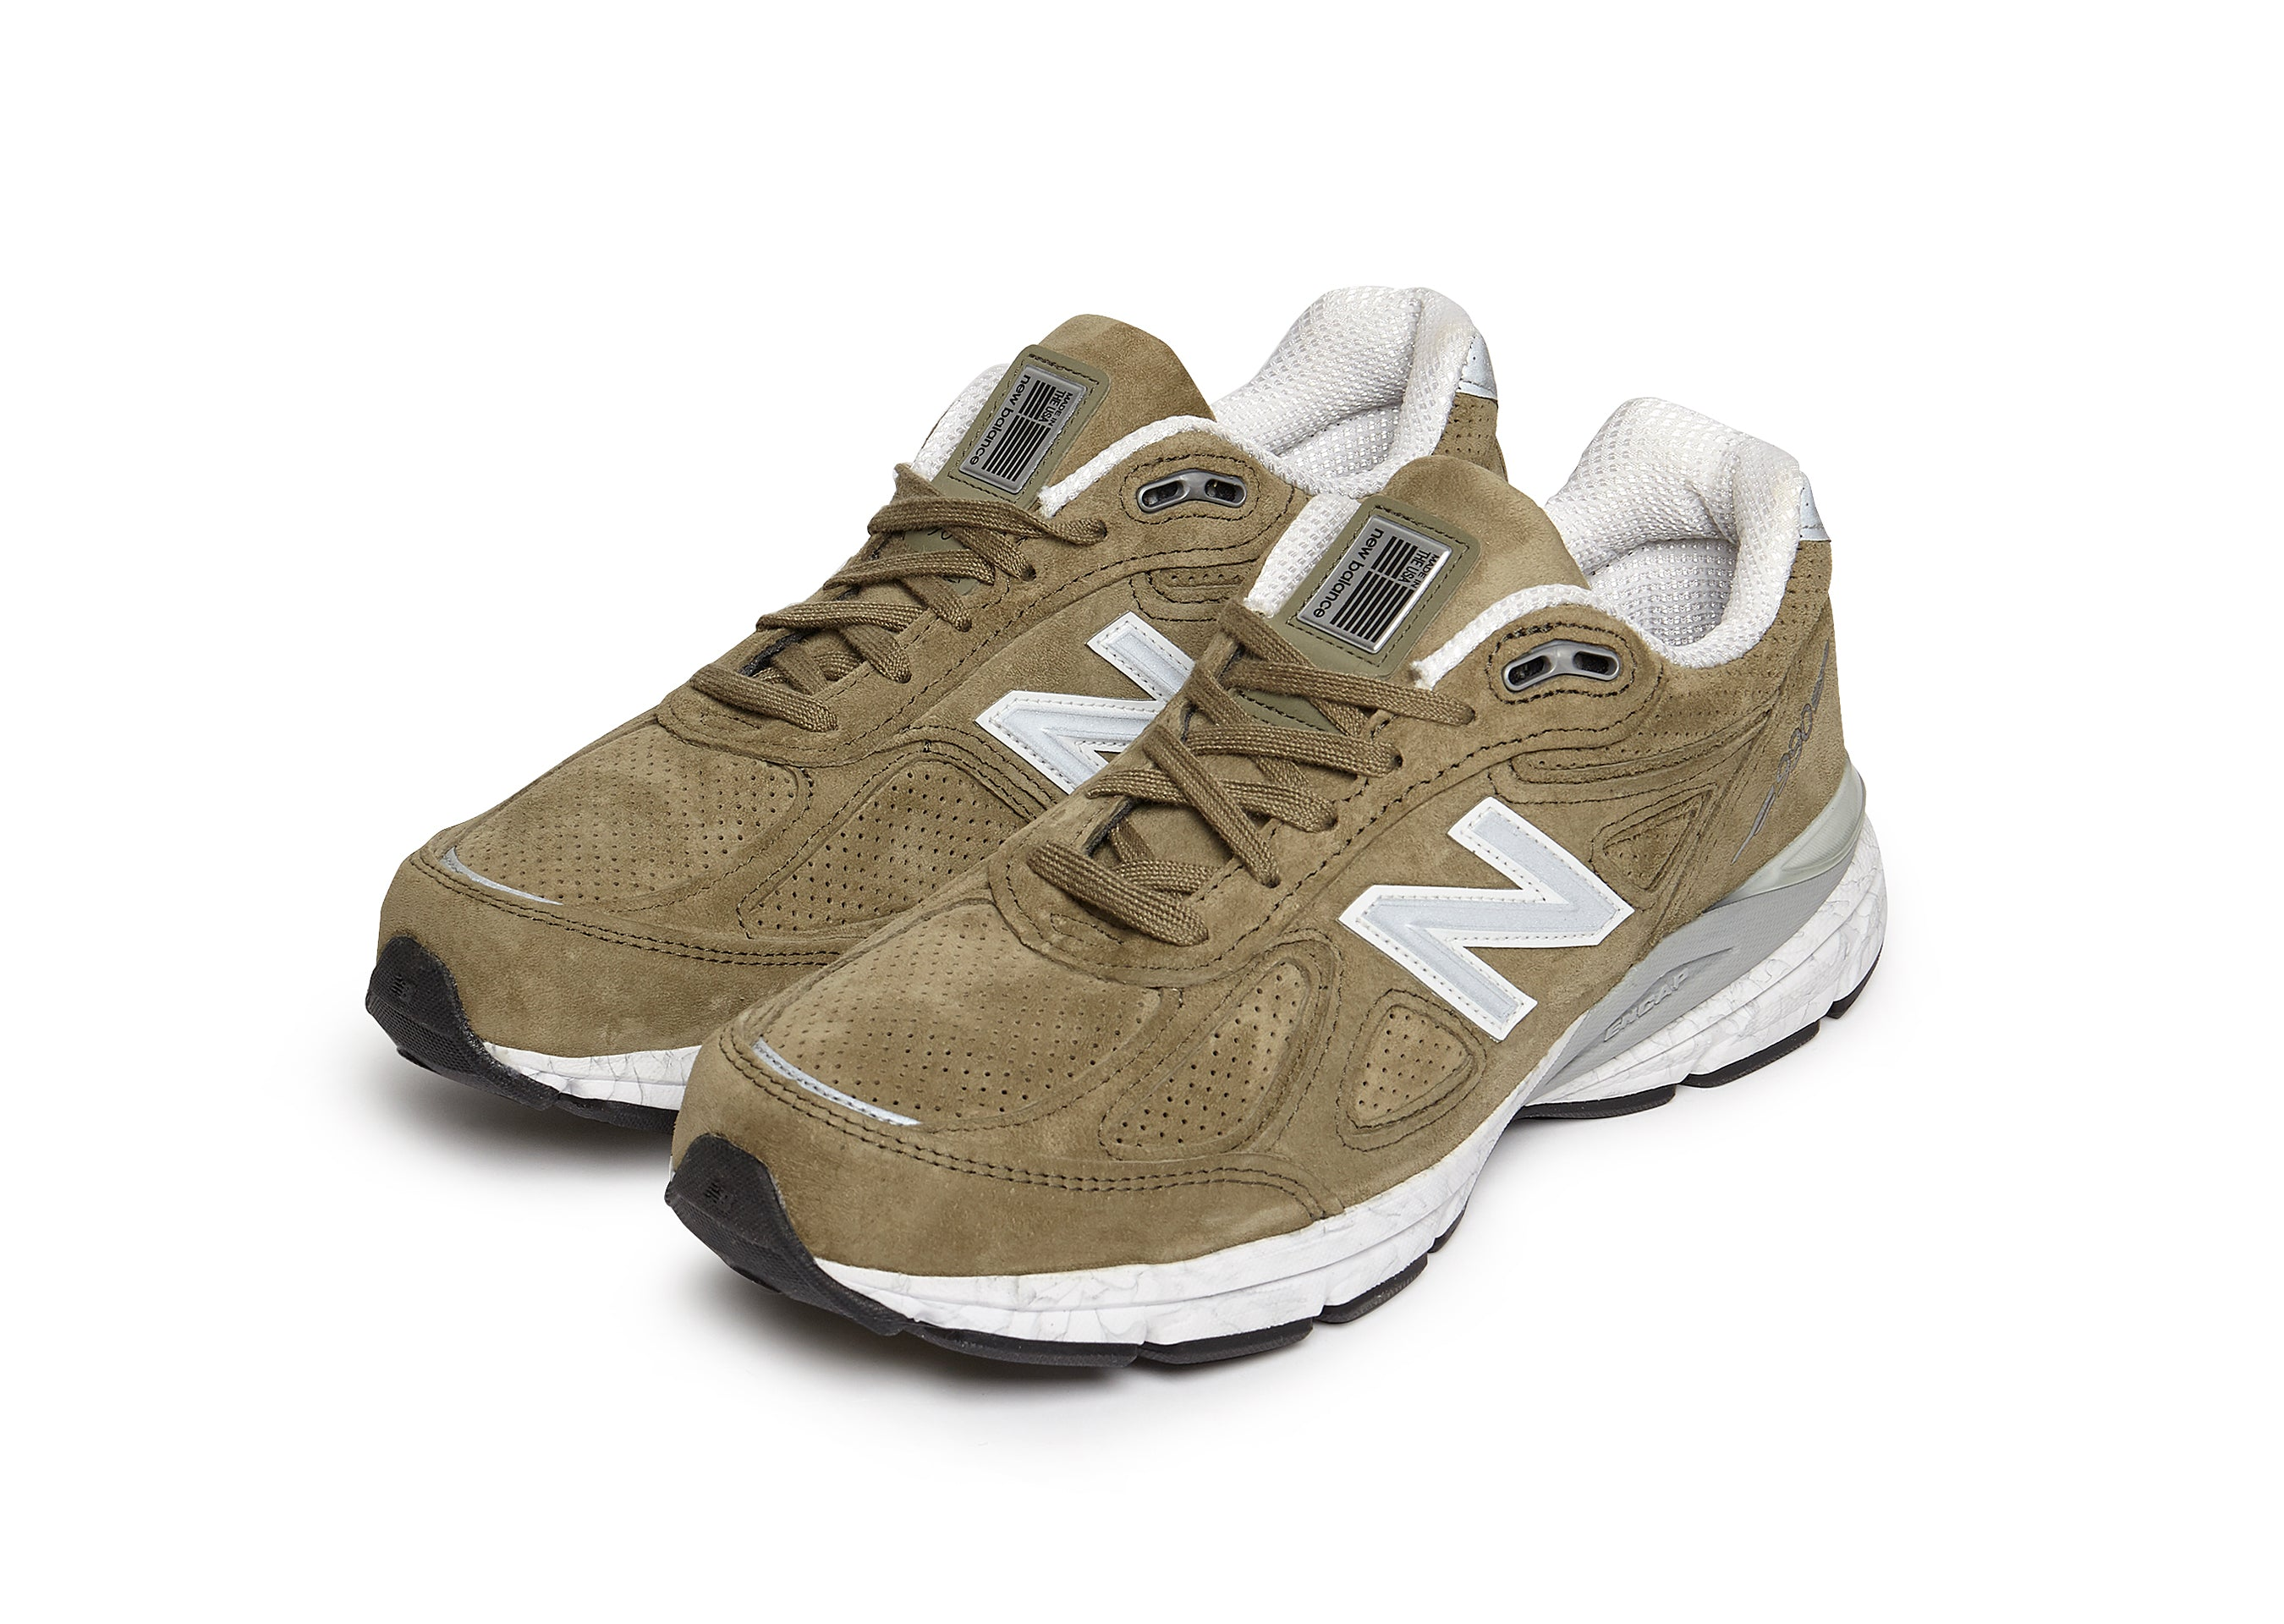 hot sales 8b94a 8db04 ... New Balance 990 in Covert Green ...